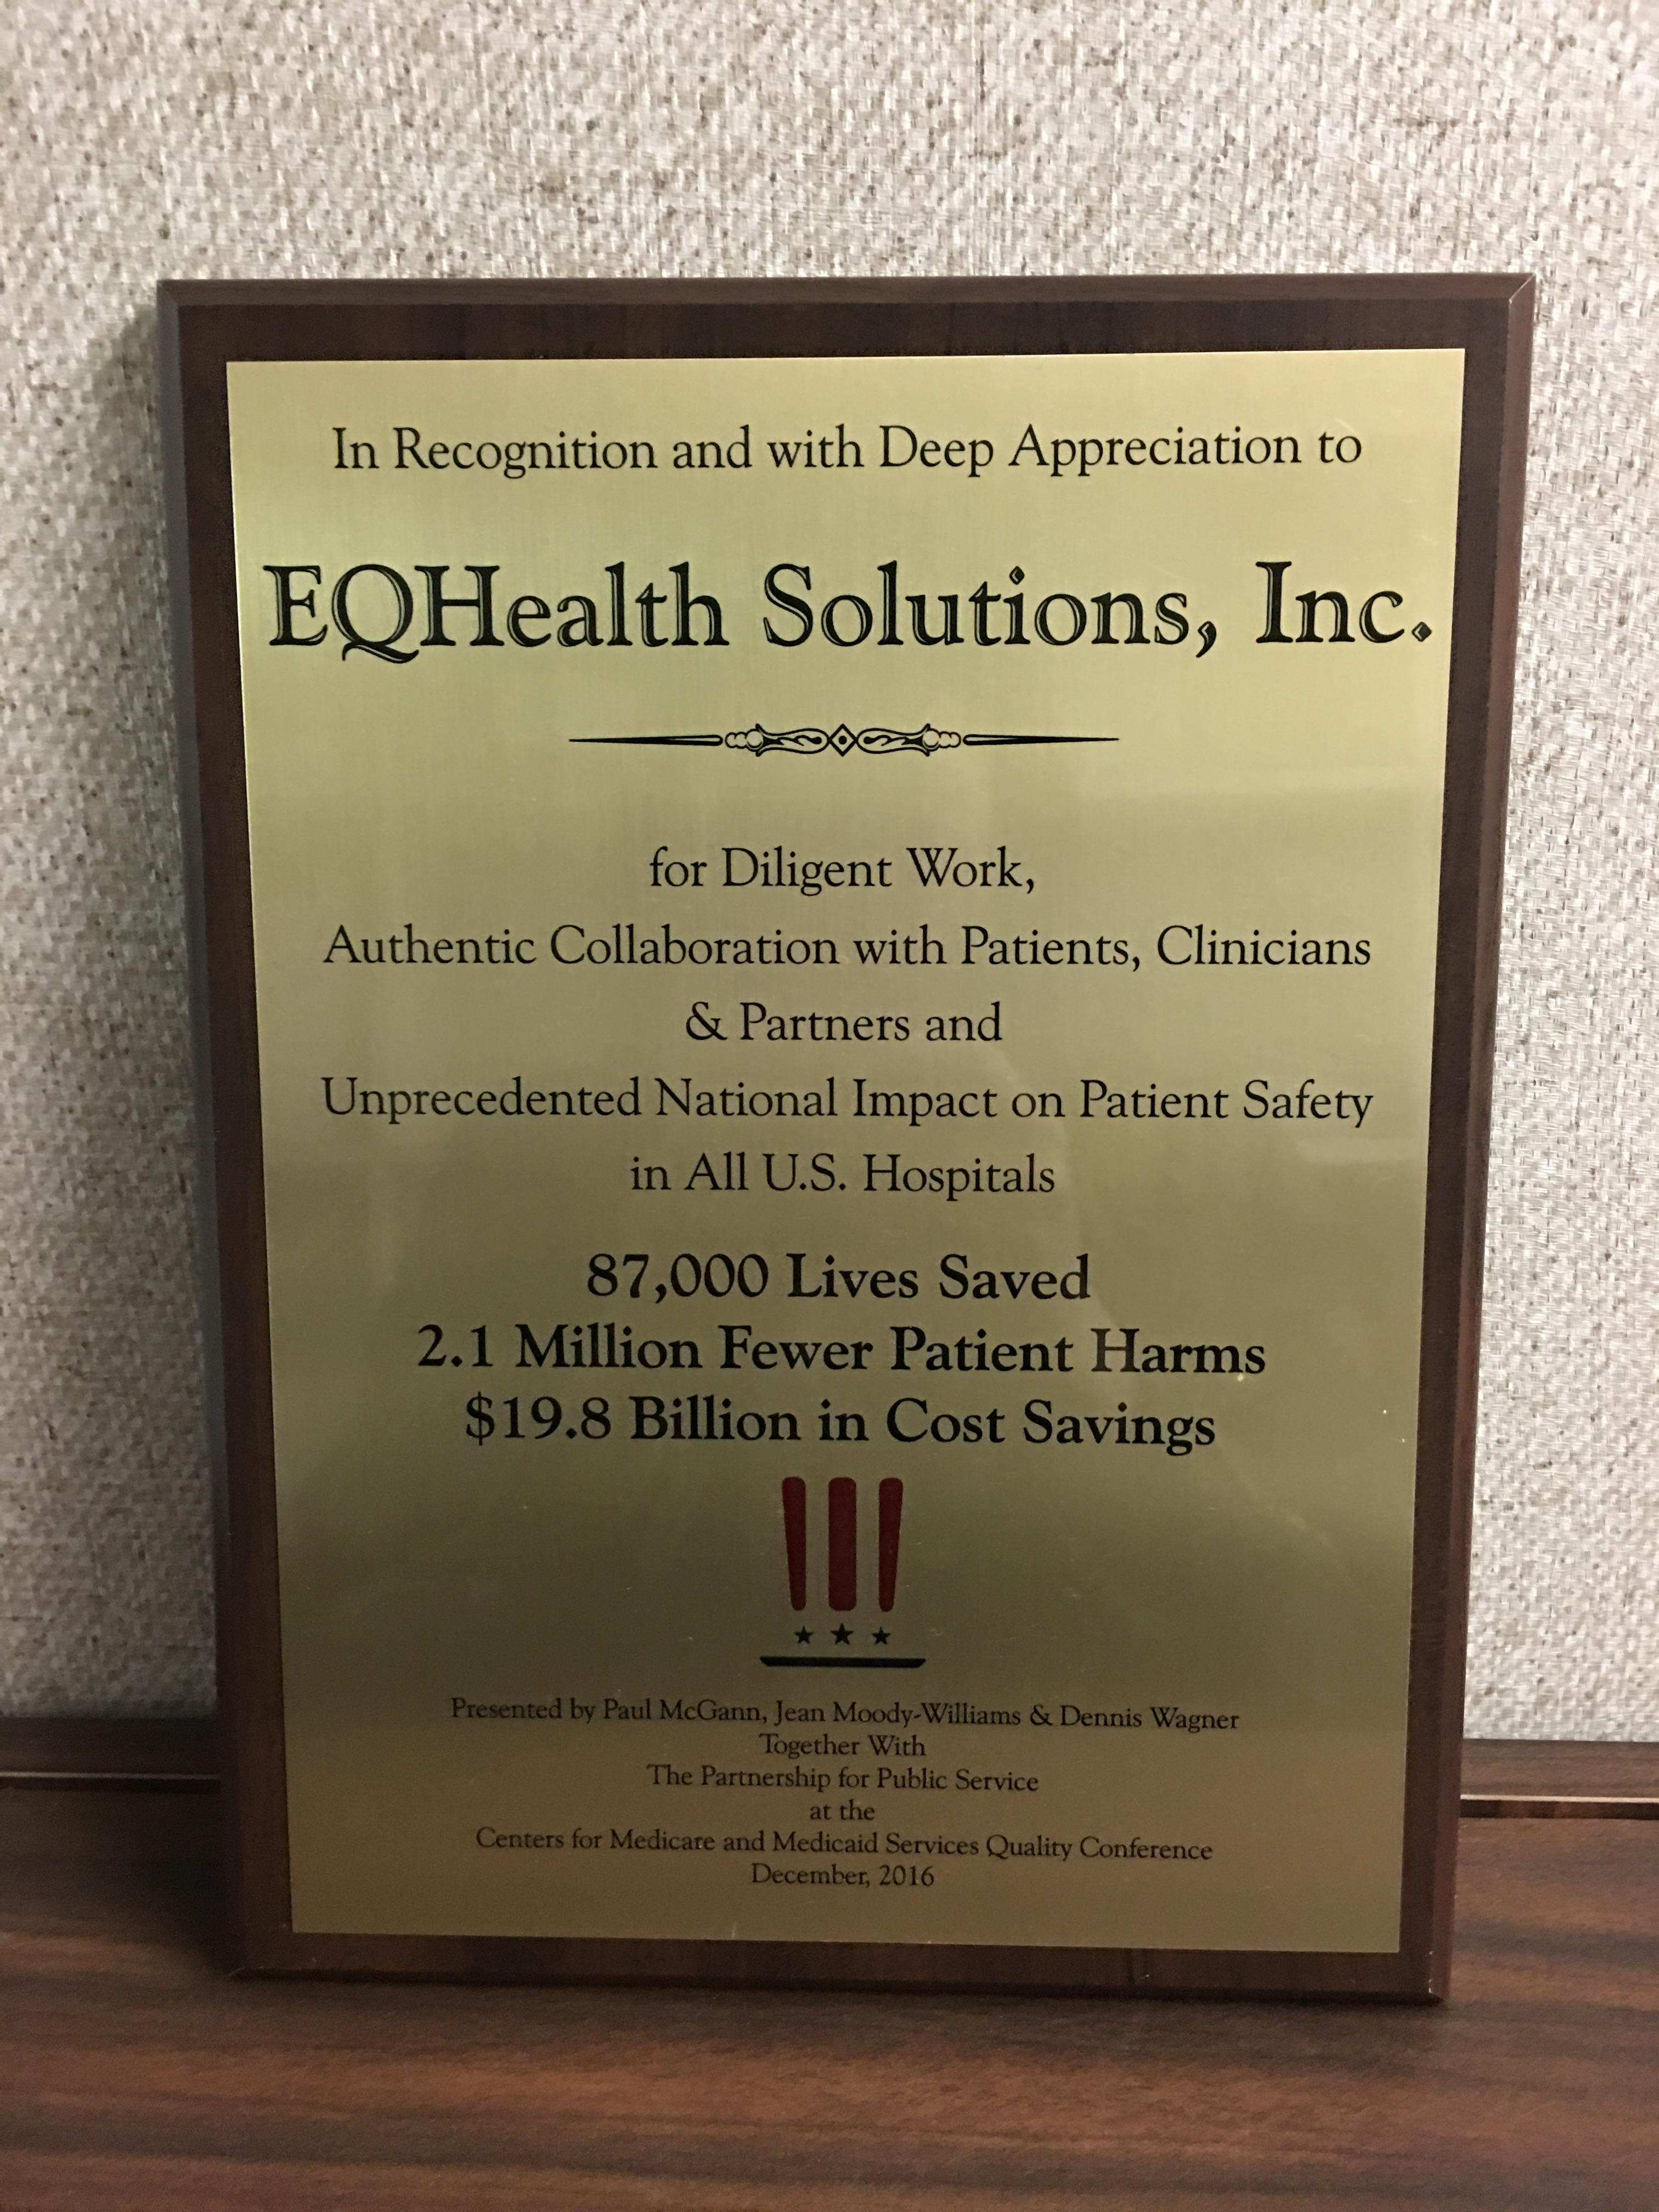 CMS Awards eQHealth Solutions